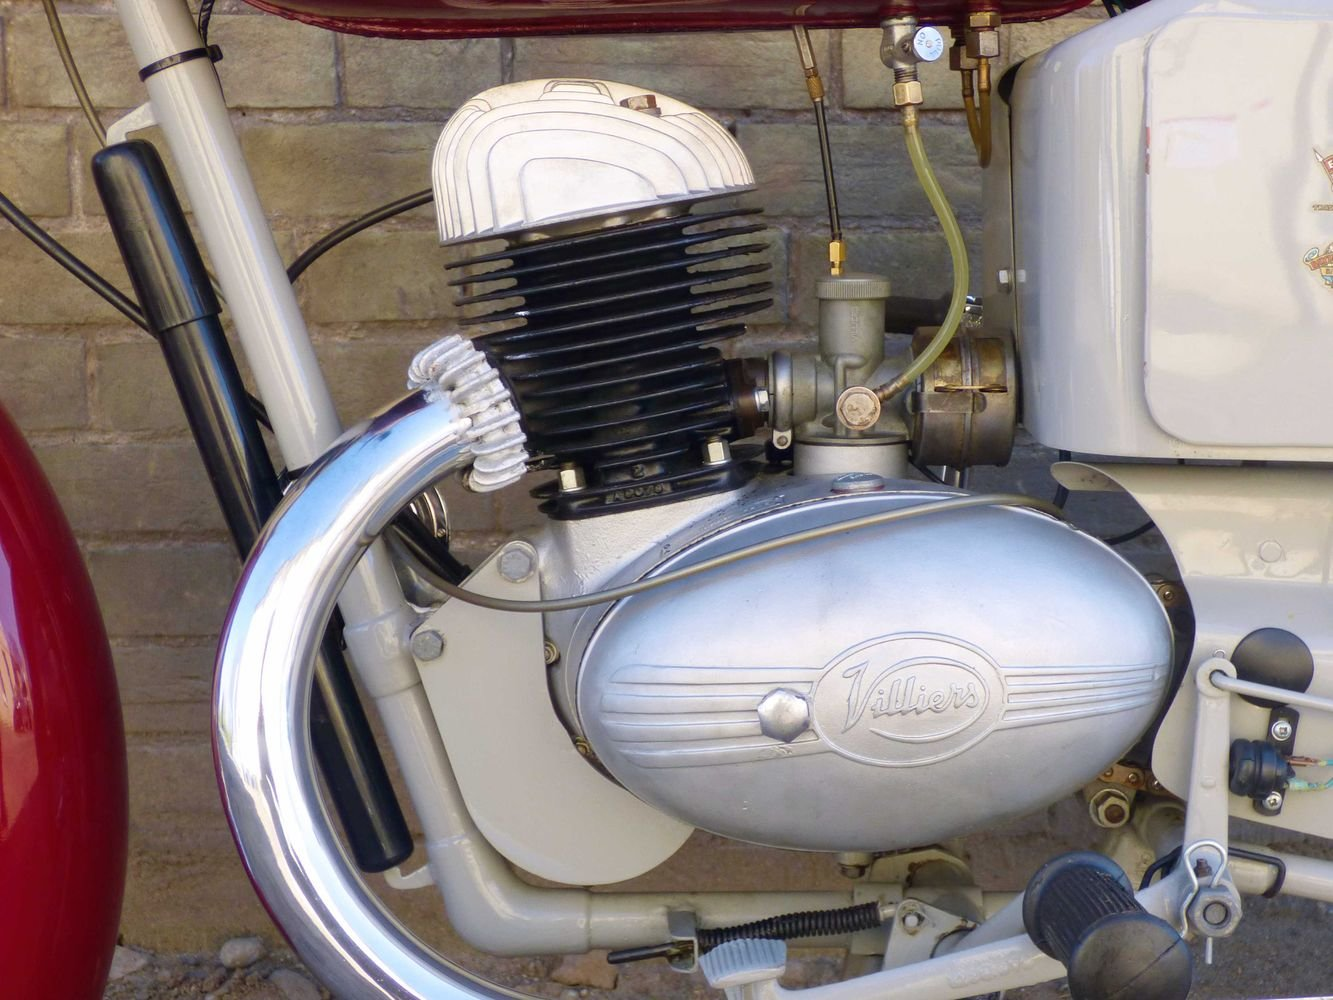 c1961 Excelsior Roadmaster 197cc For Sale (picture 4 of 6)